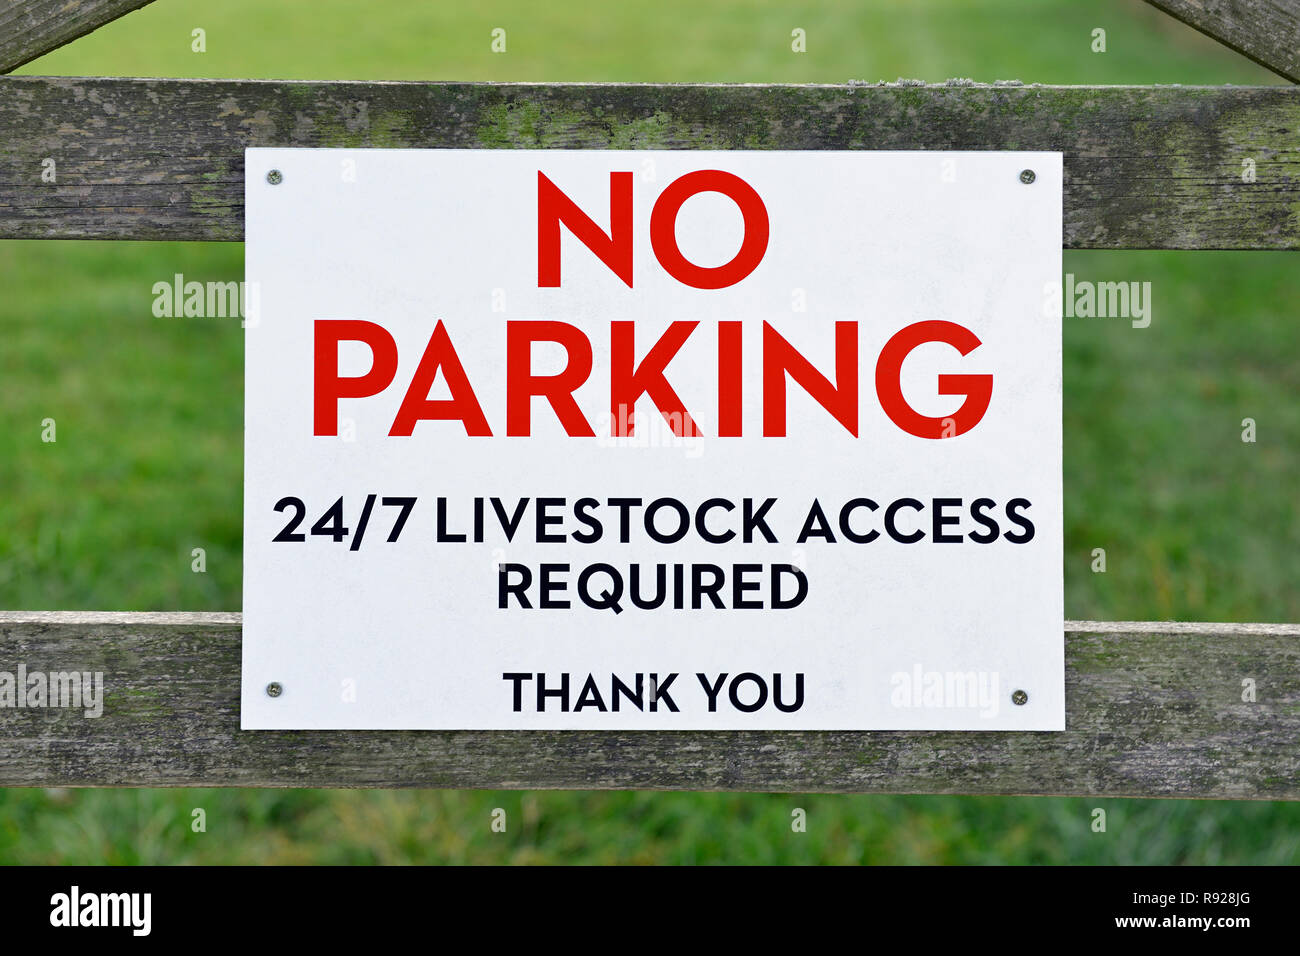 No Parking, Livestock Access Required, Sign on a gate to a field, Oxfordshire, England, United Kingdom - Stock Image